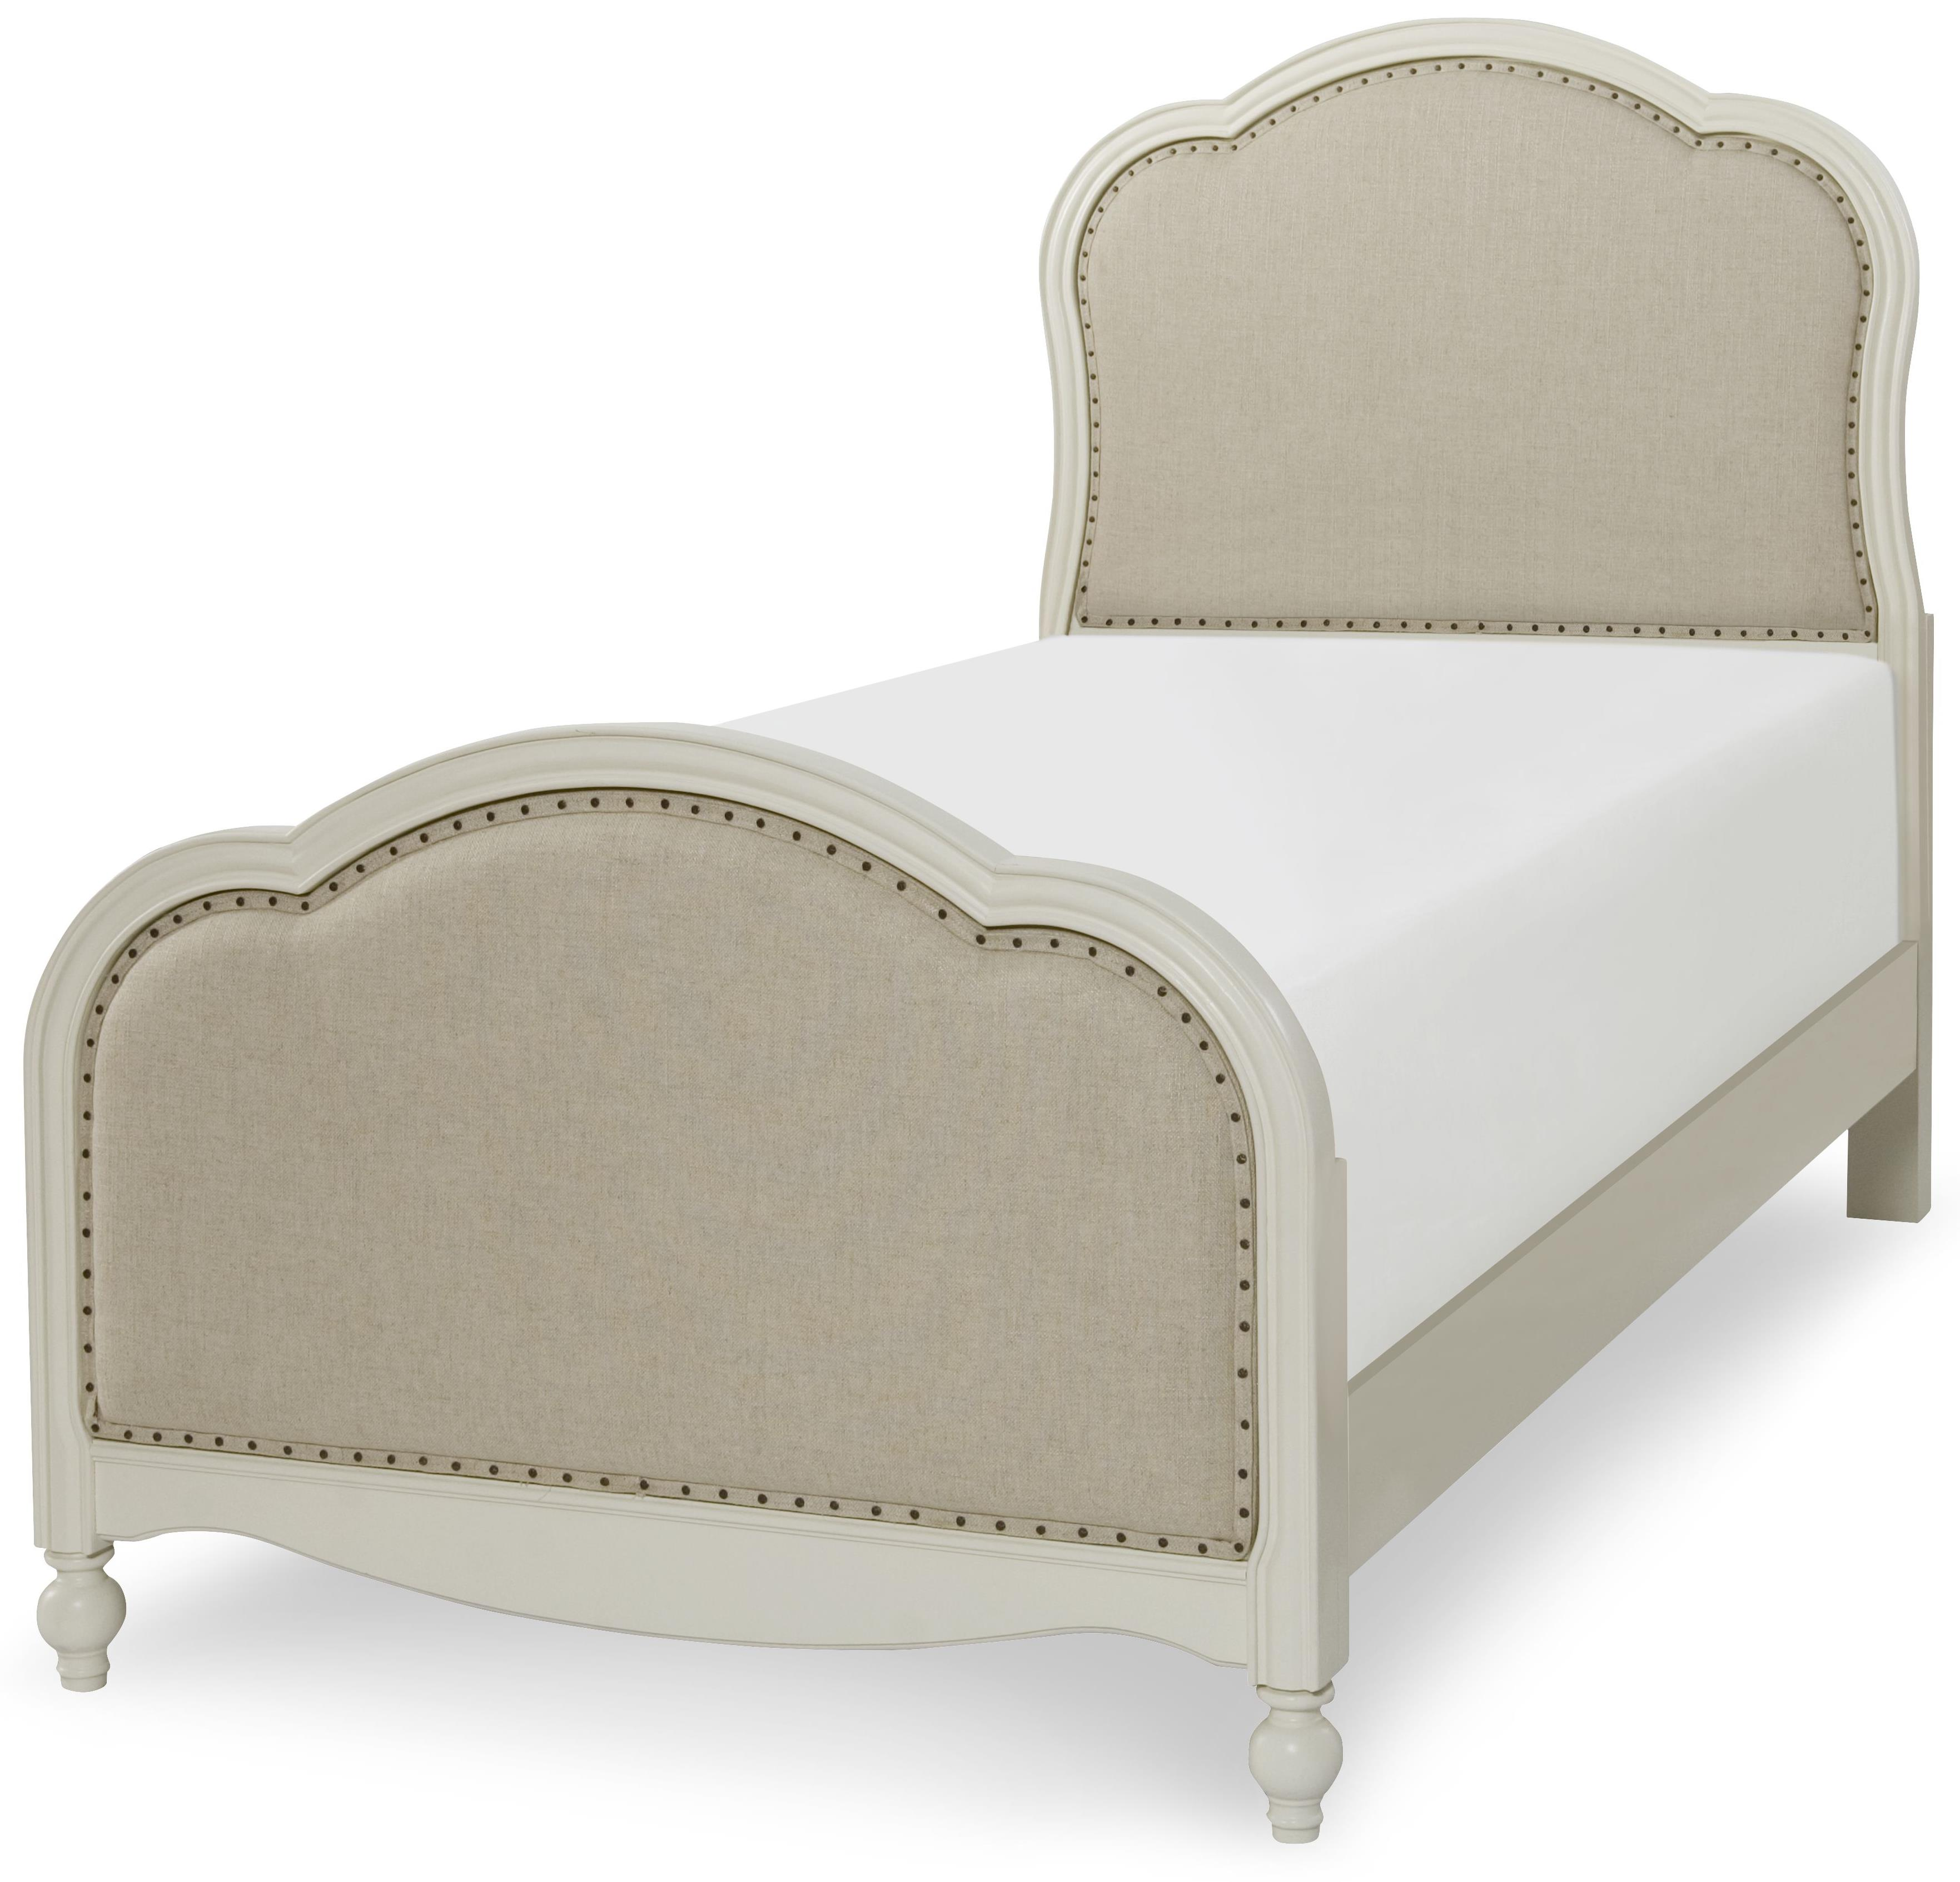 Harmony Victoria Upholstered Panel Twin Bed by Legacy Classic Kids at Lindy's Furniture Company